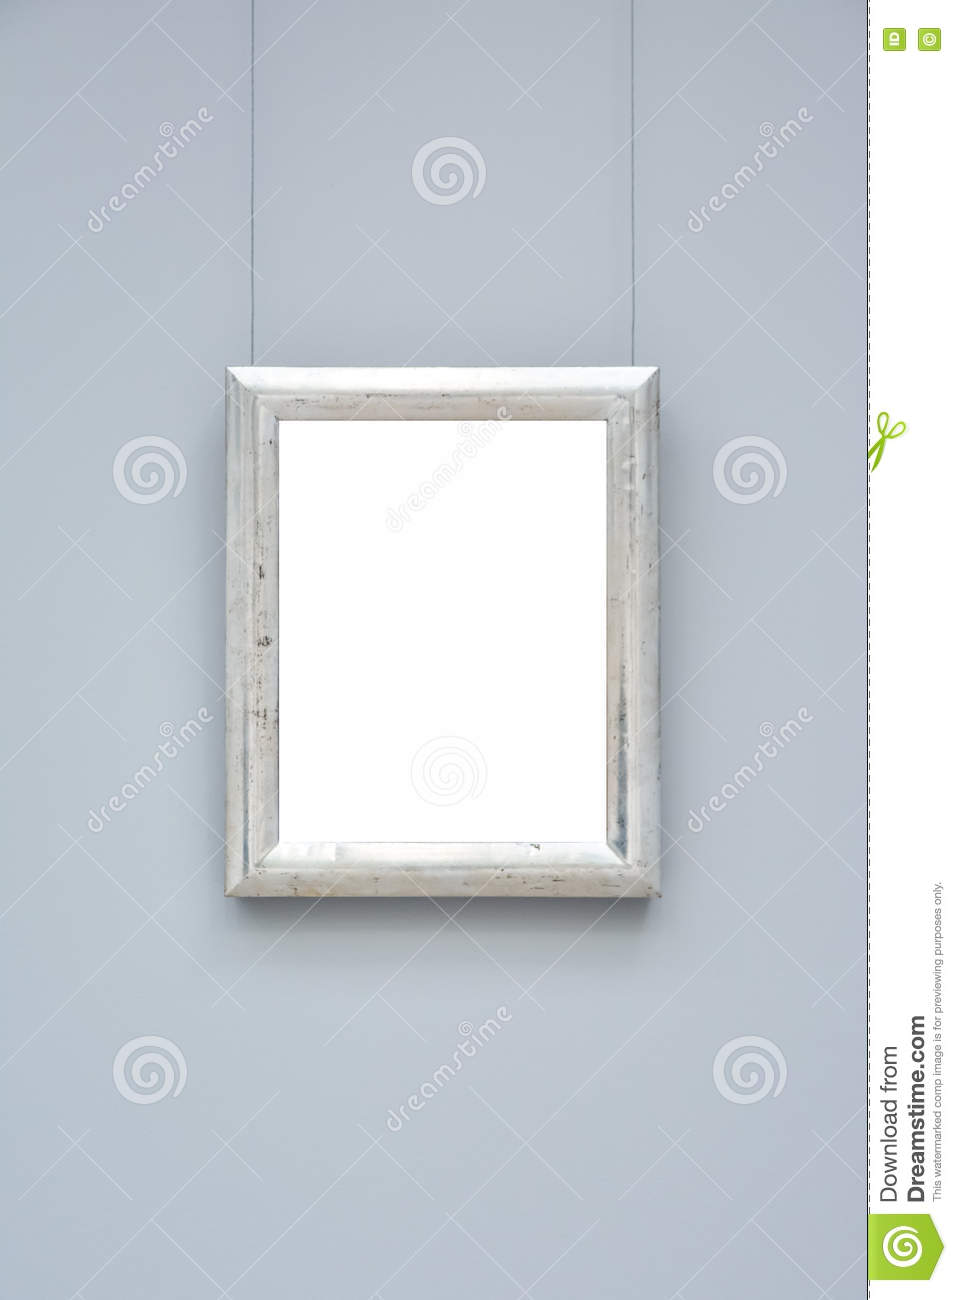 ac889ff870b Art Museum Frame Wall Ornate Minimal Design White Isolated Clipping Path  Template